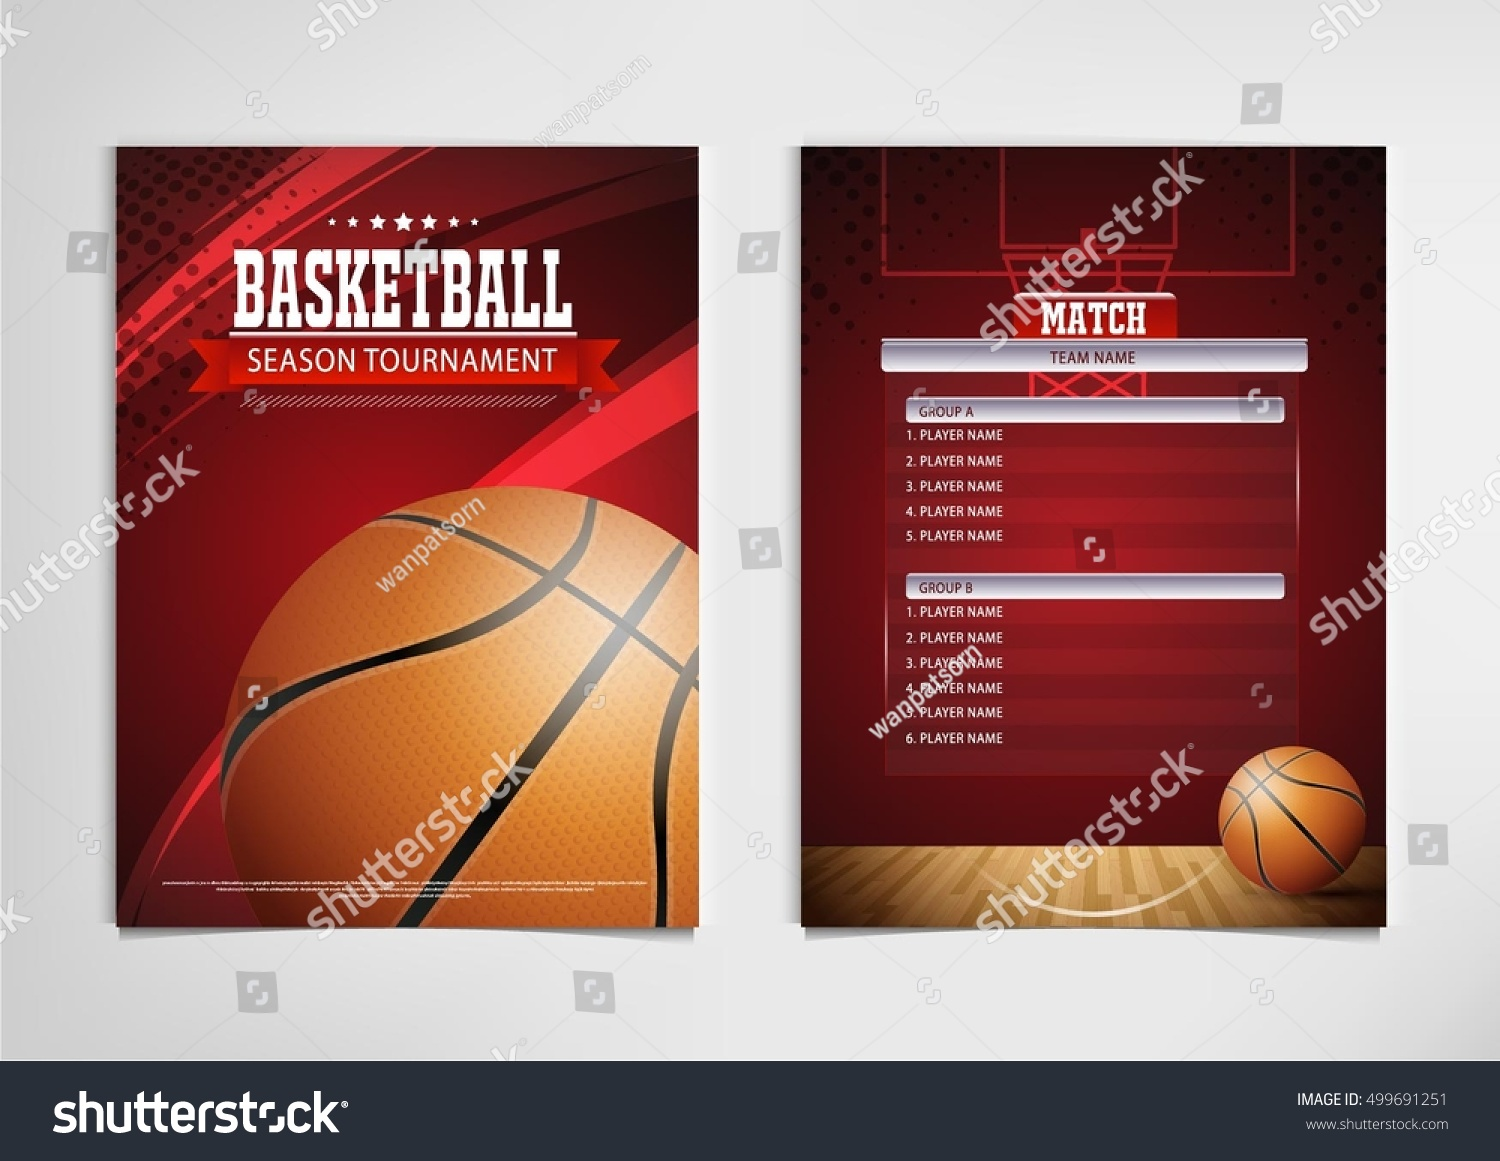 100 3 on 3 basketball tournament flyer template basketball 3 on 3 basketball tournament flyer template basketball tournament modern sports posters vector stock vector pronofoot35fo Gallery